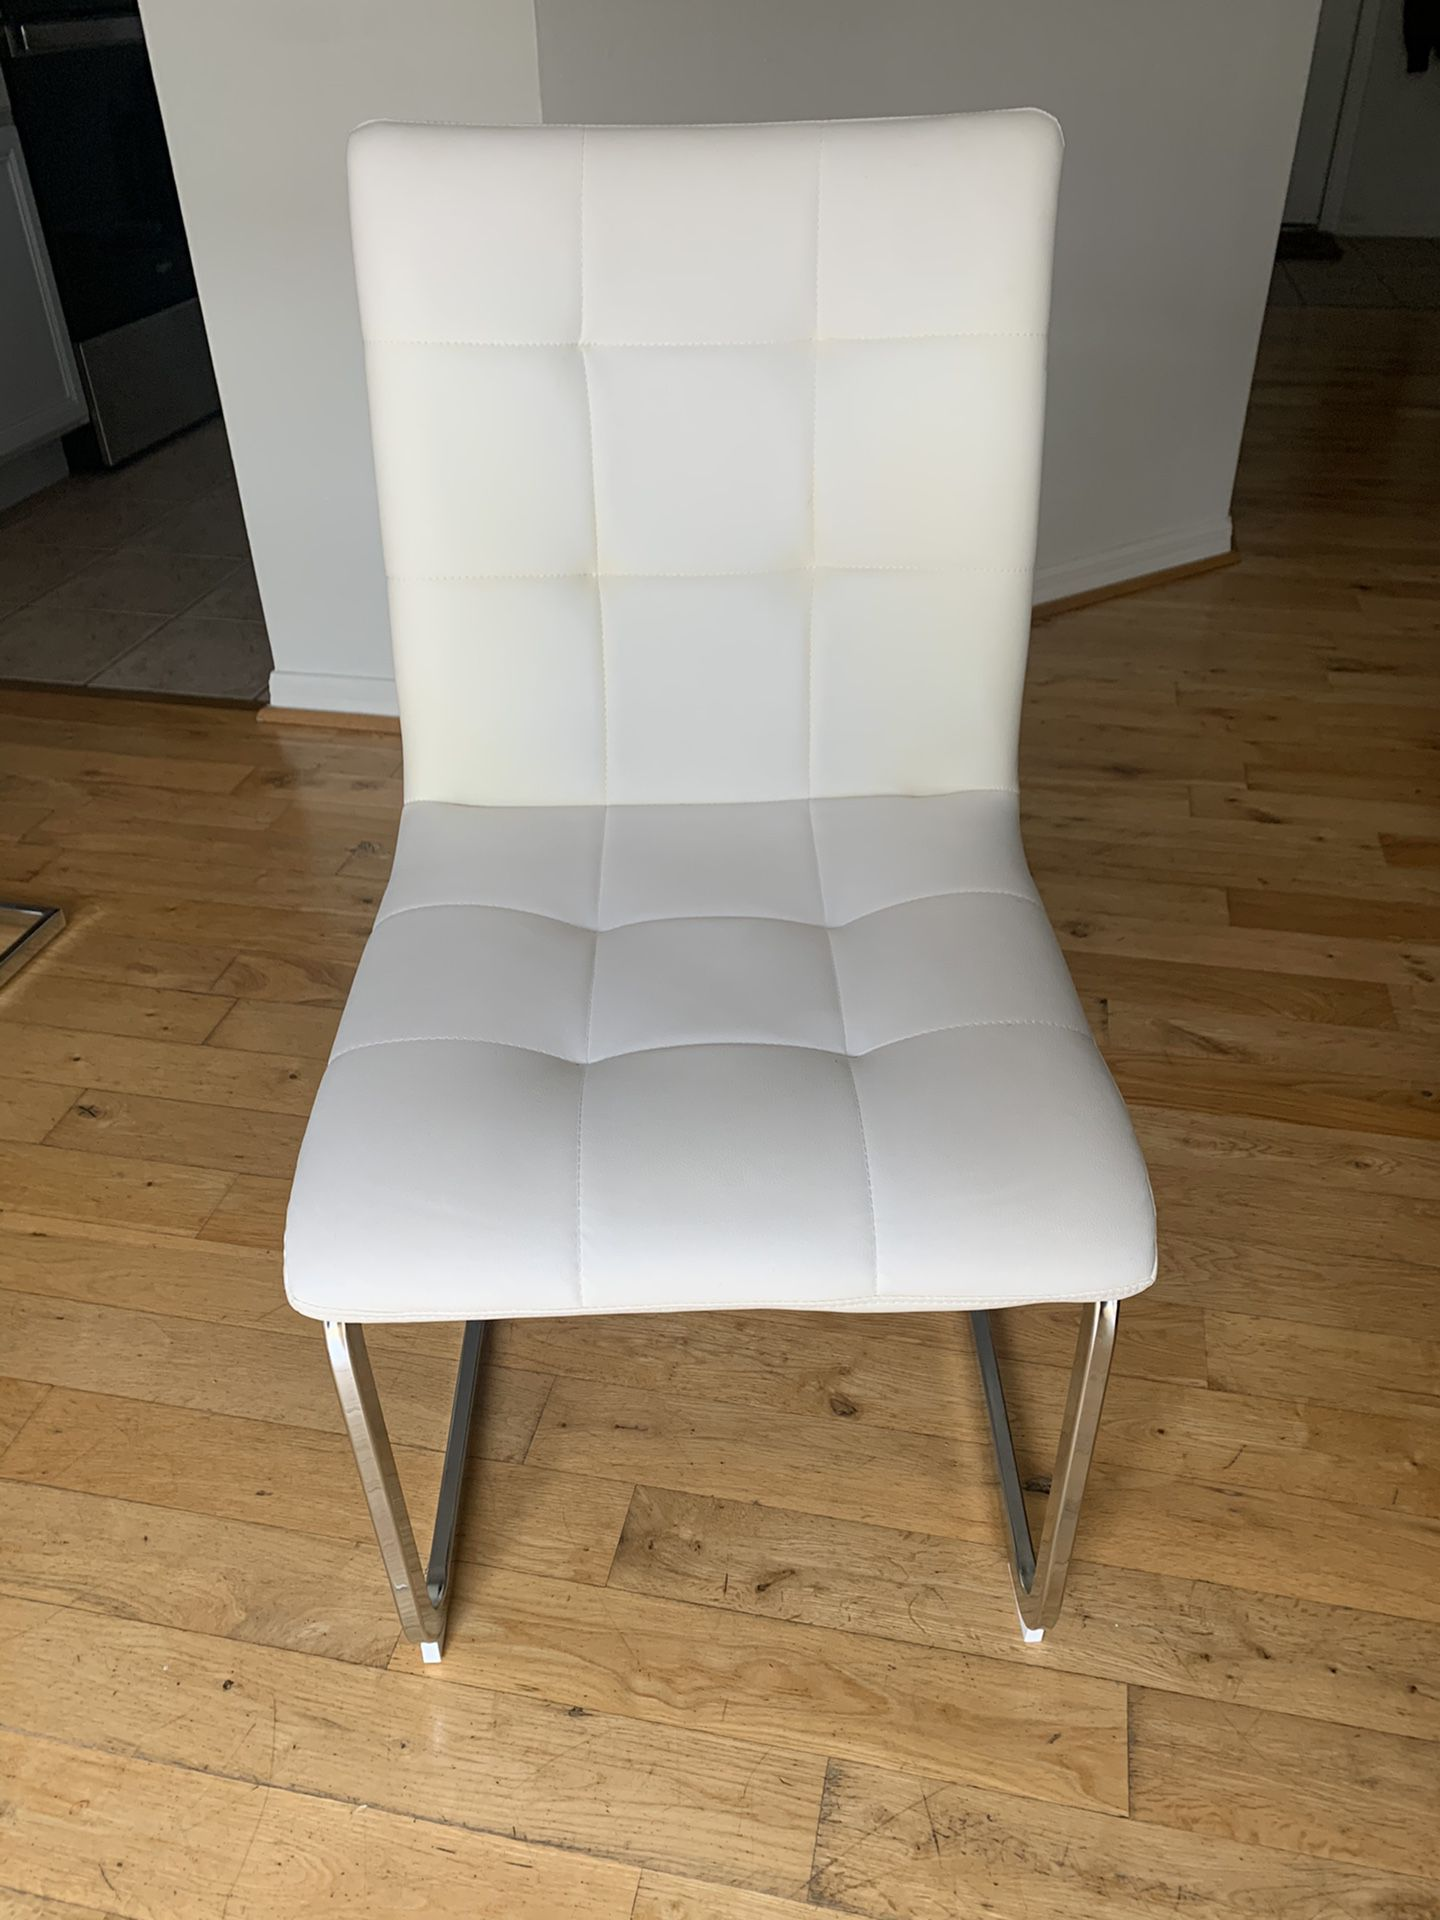 4 White Leather dining room chairs in great condition